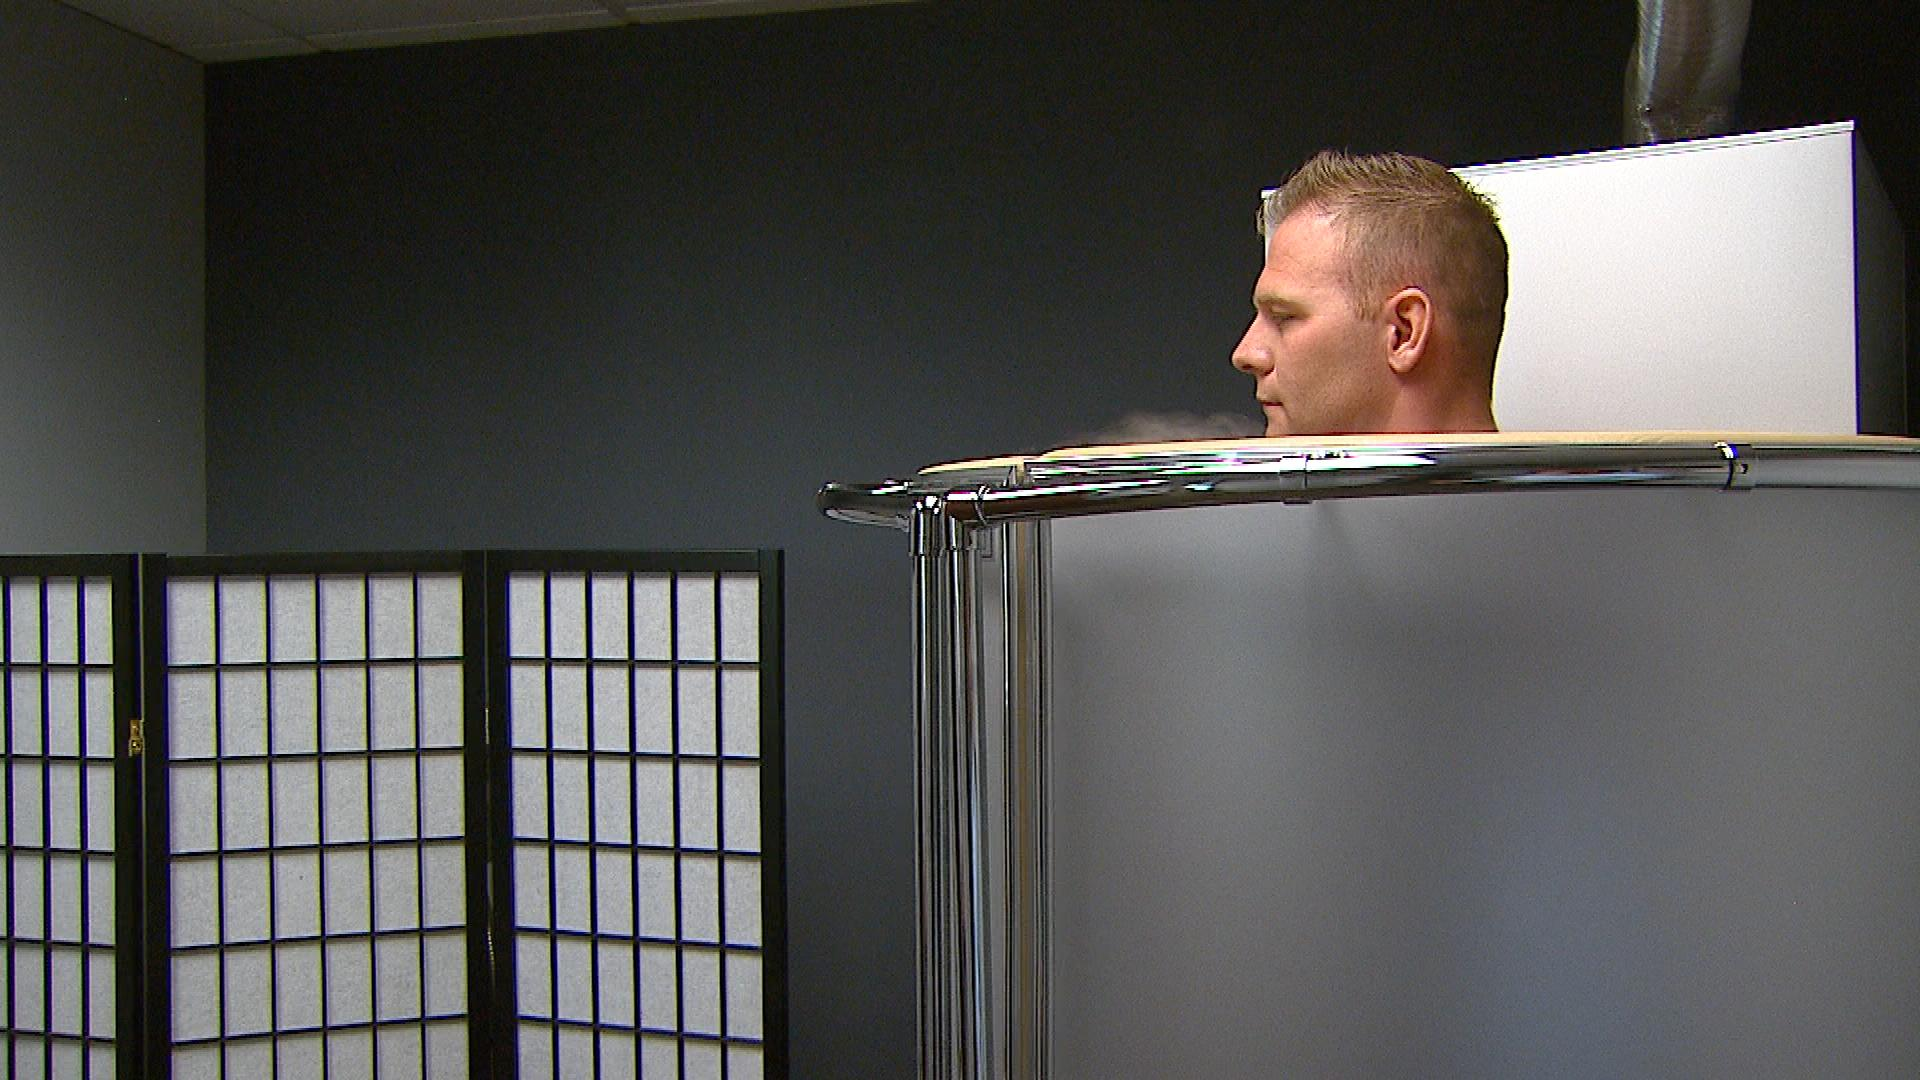 Ian Wallace in the cryotherapy chamber (credit: CBS)